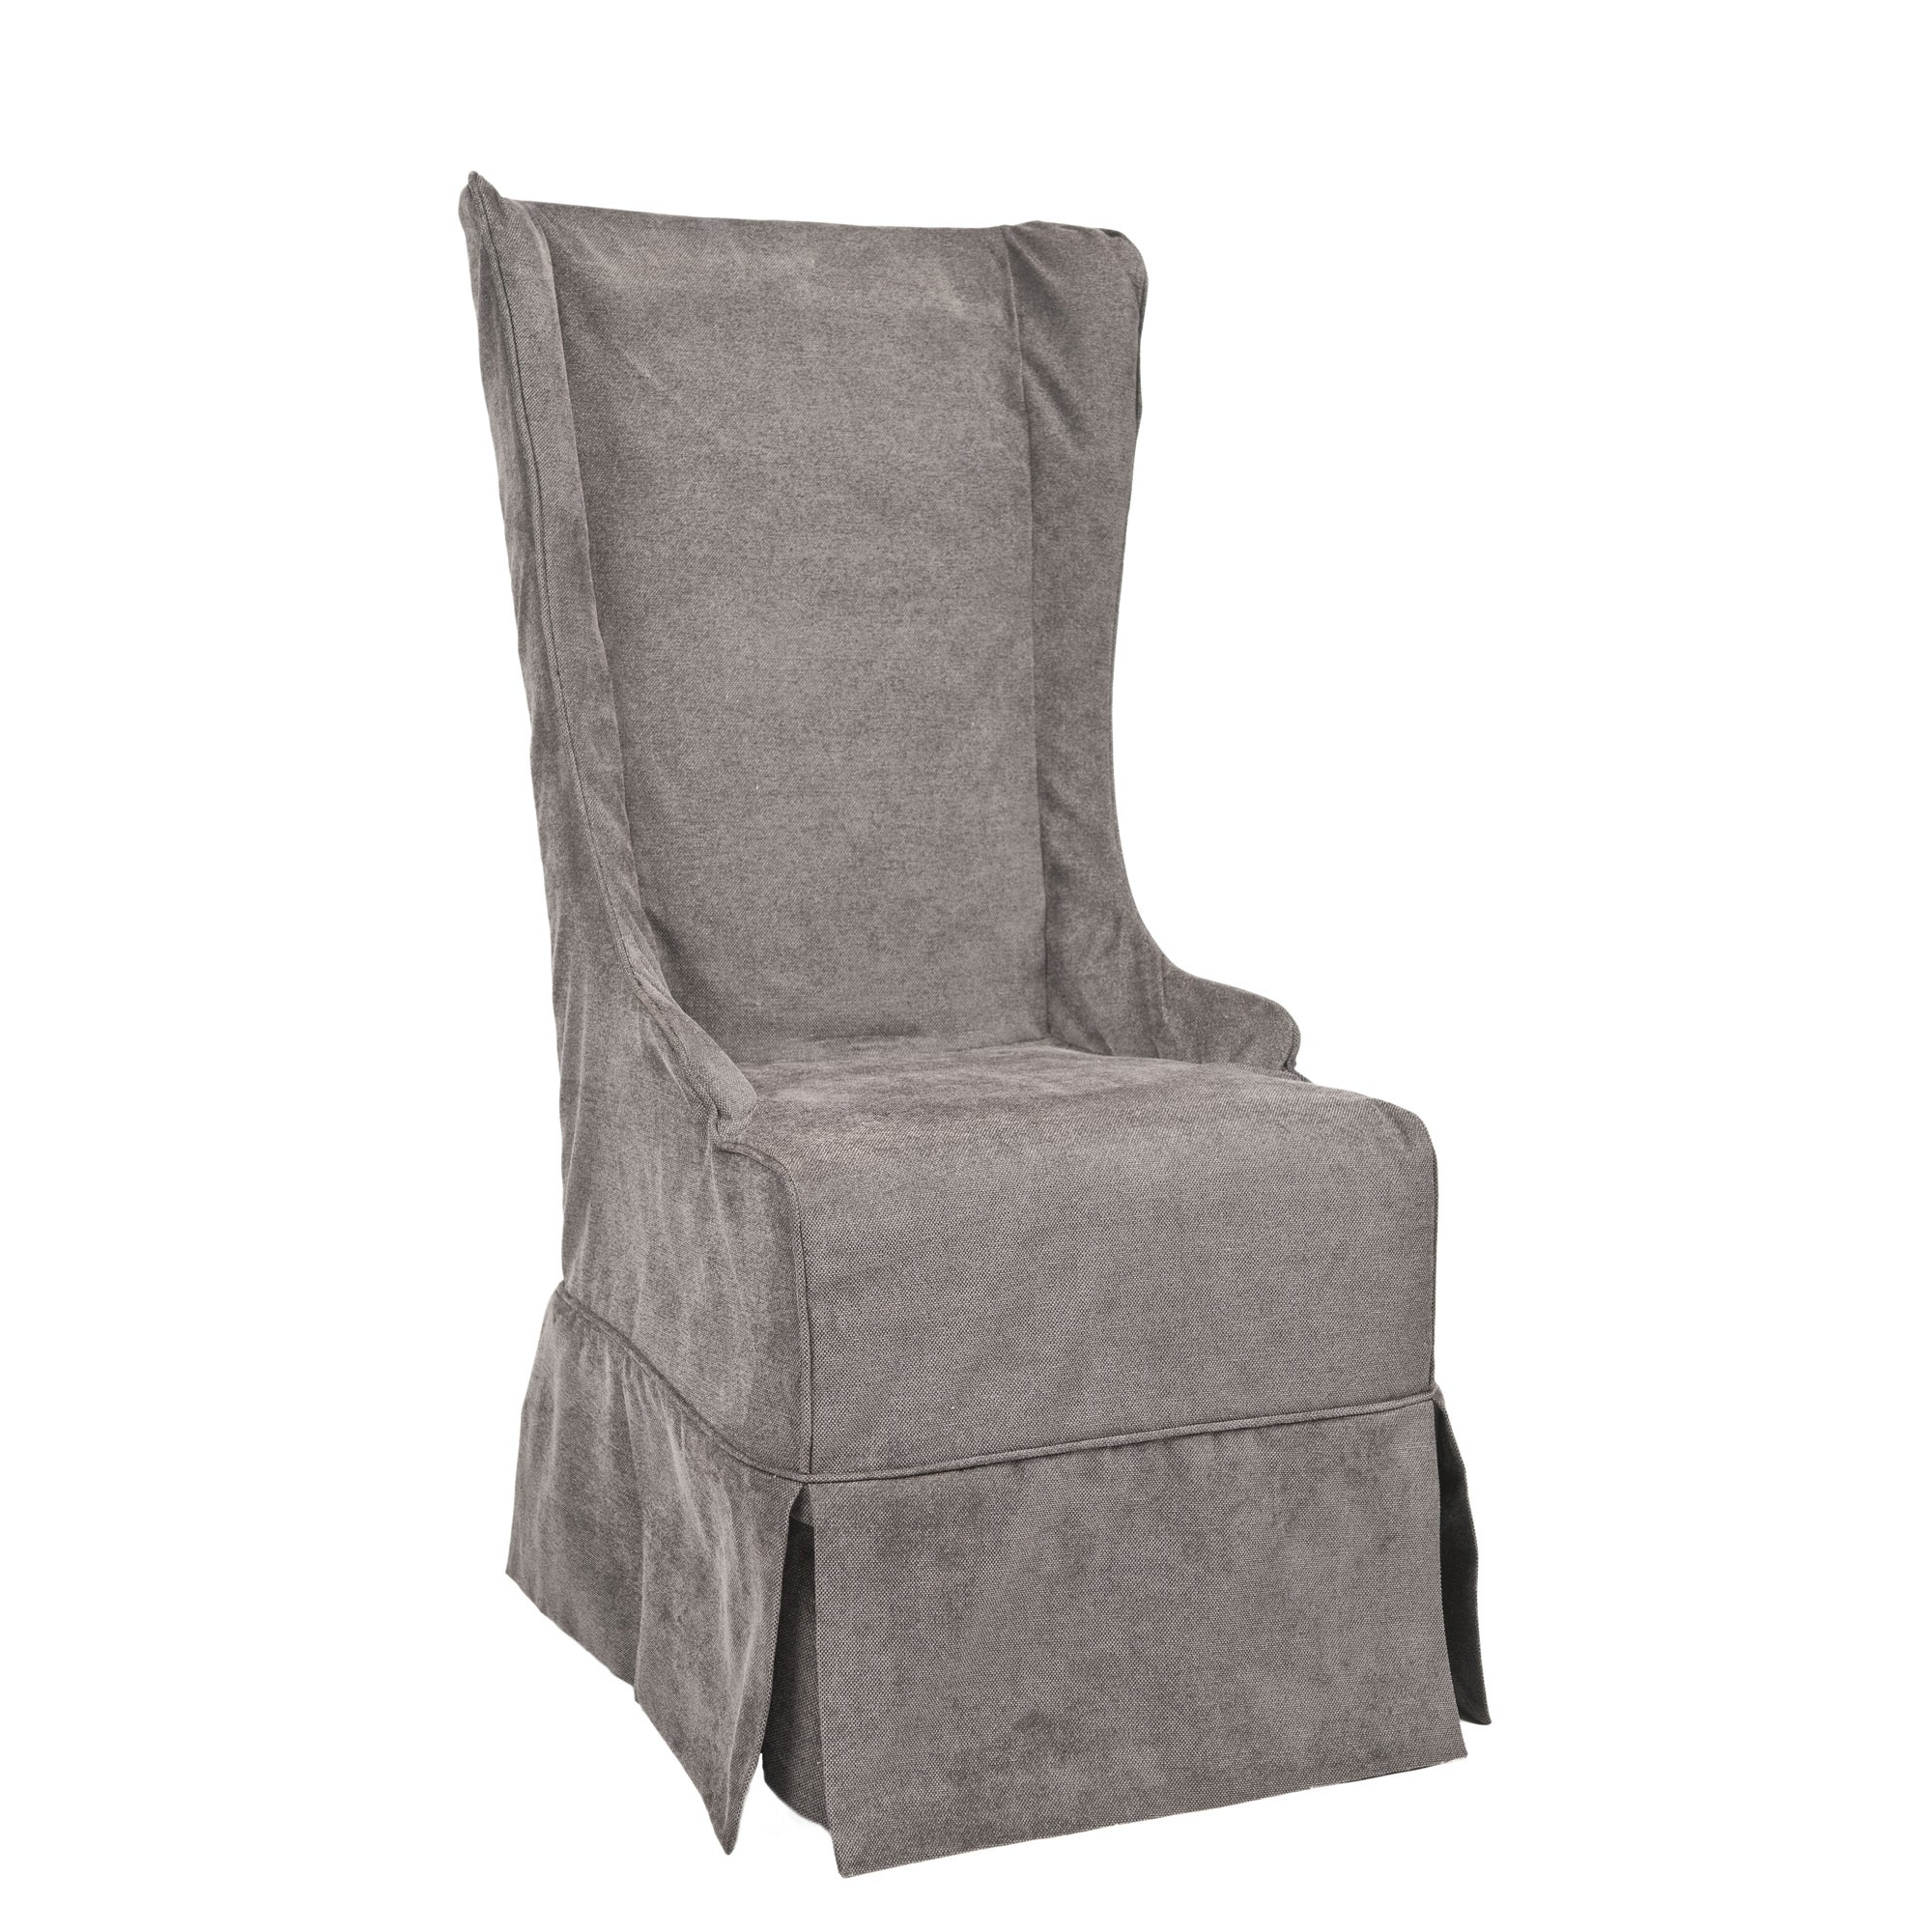 Safavieh En Vogue Dining Deco Bacall Dark Grey Slip Cover Dining Chair    Free Shipping Today   Overstock.com   13679433